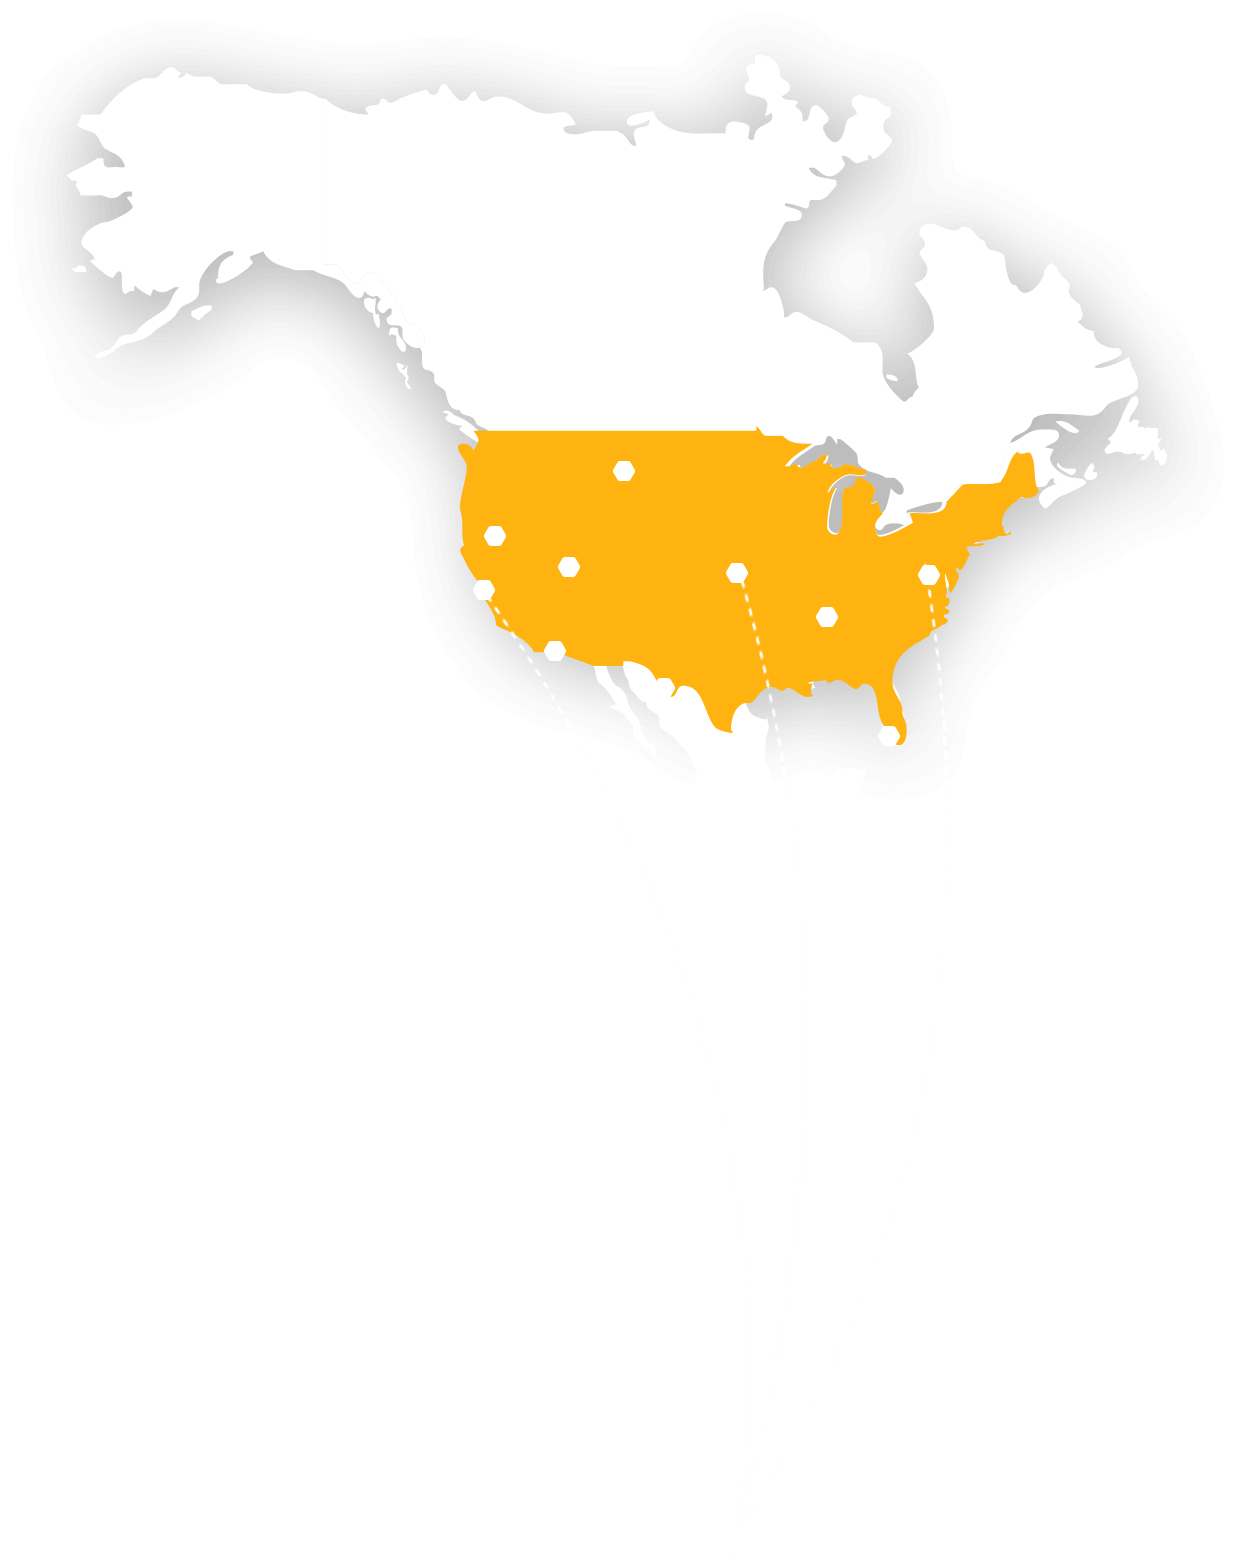 north america map statistics of vod napa advertising case study